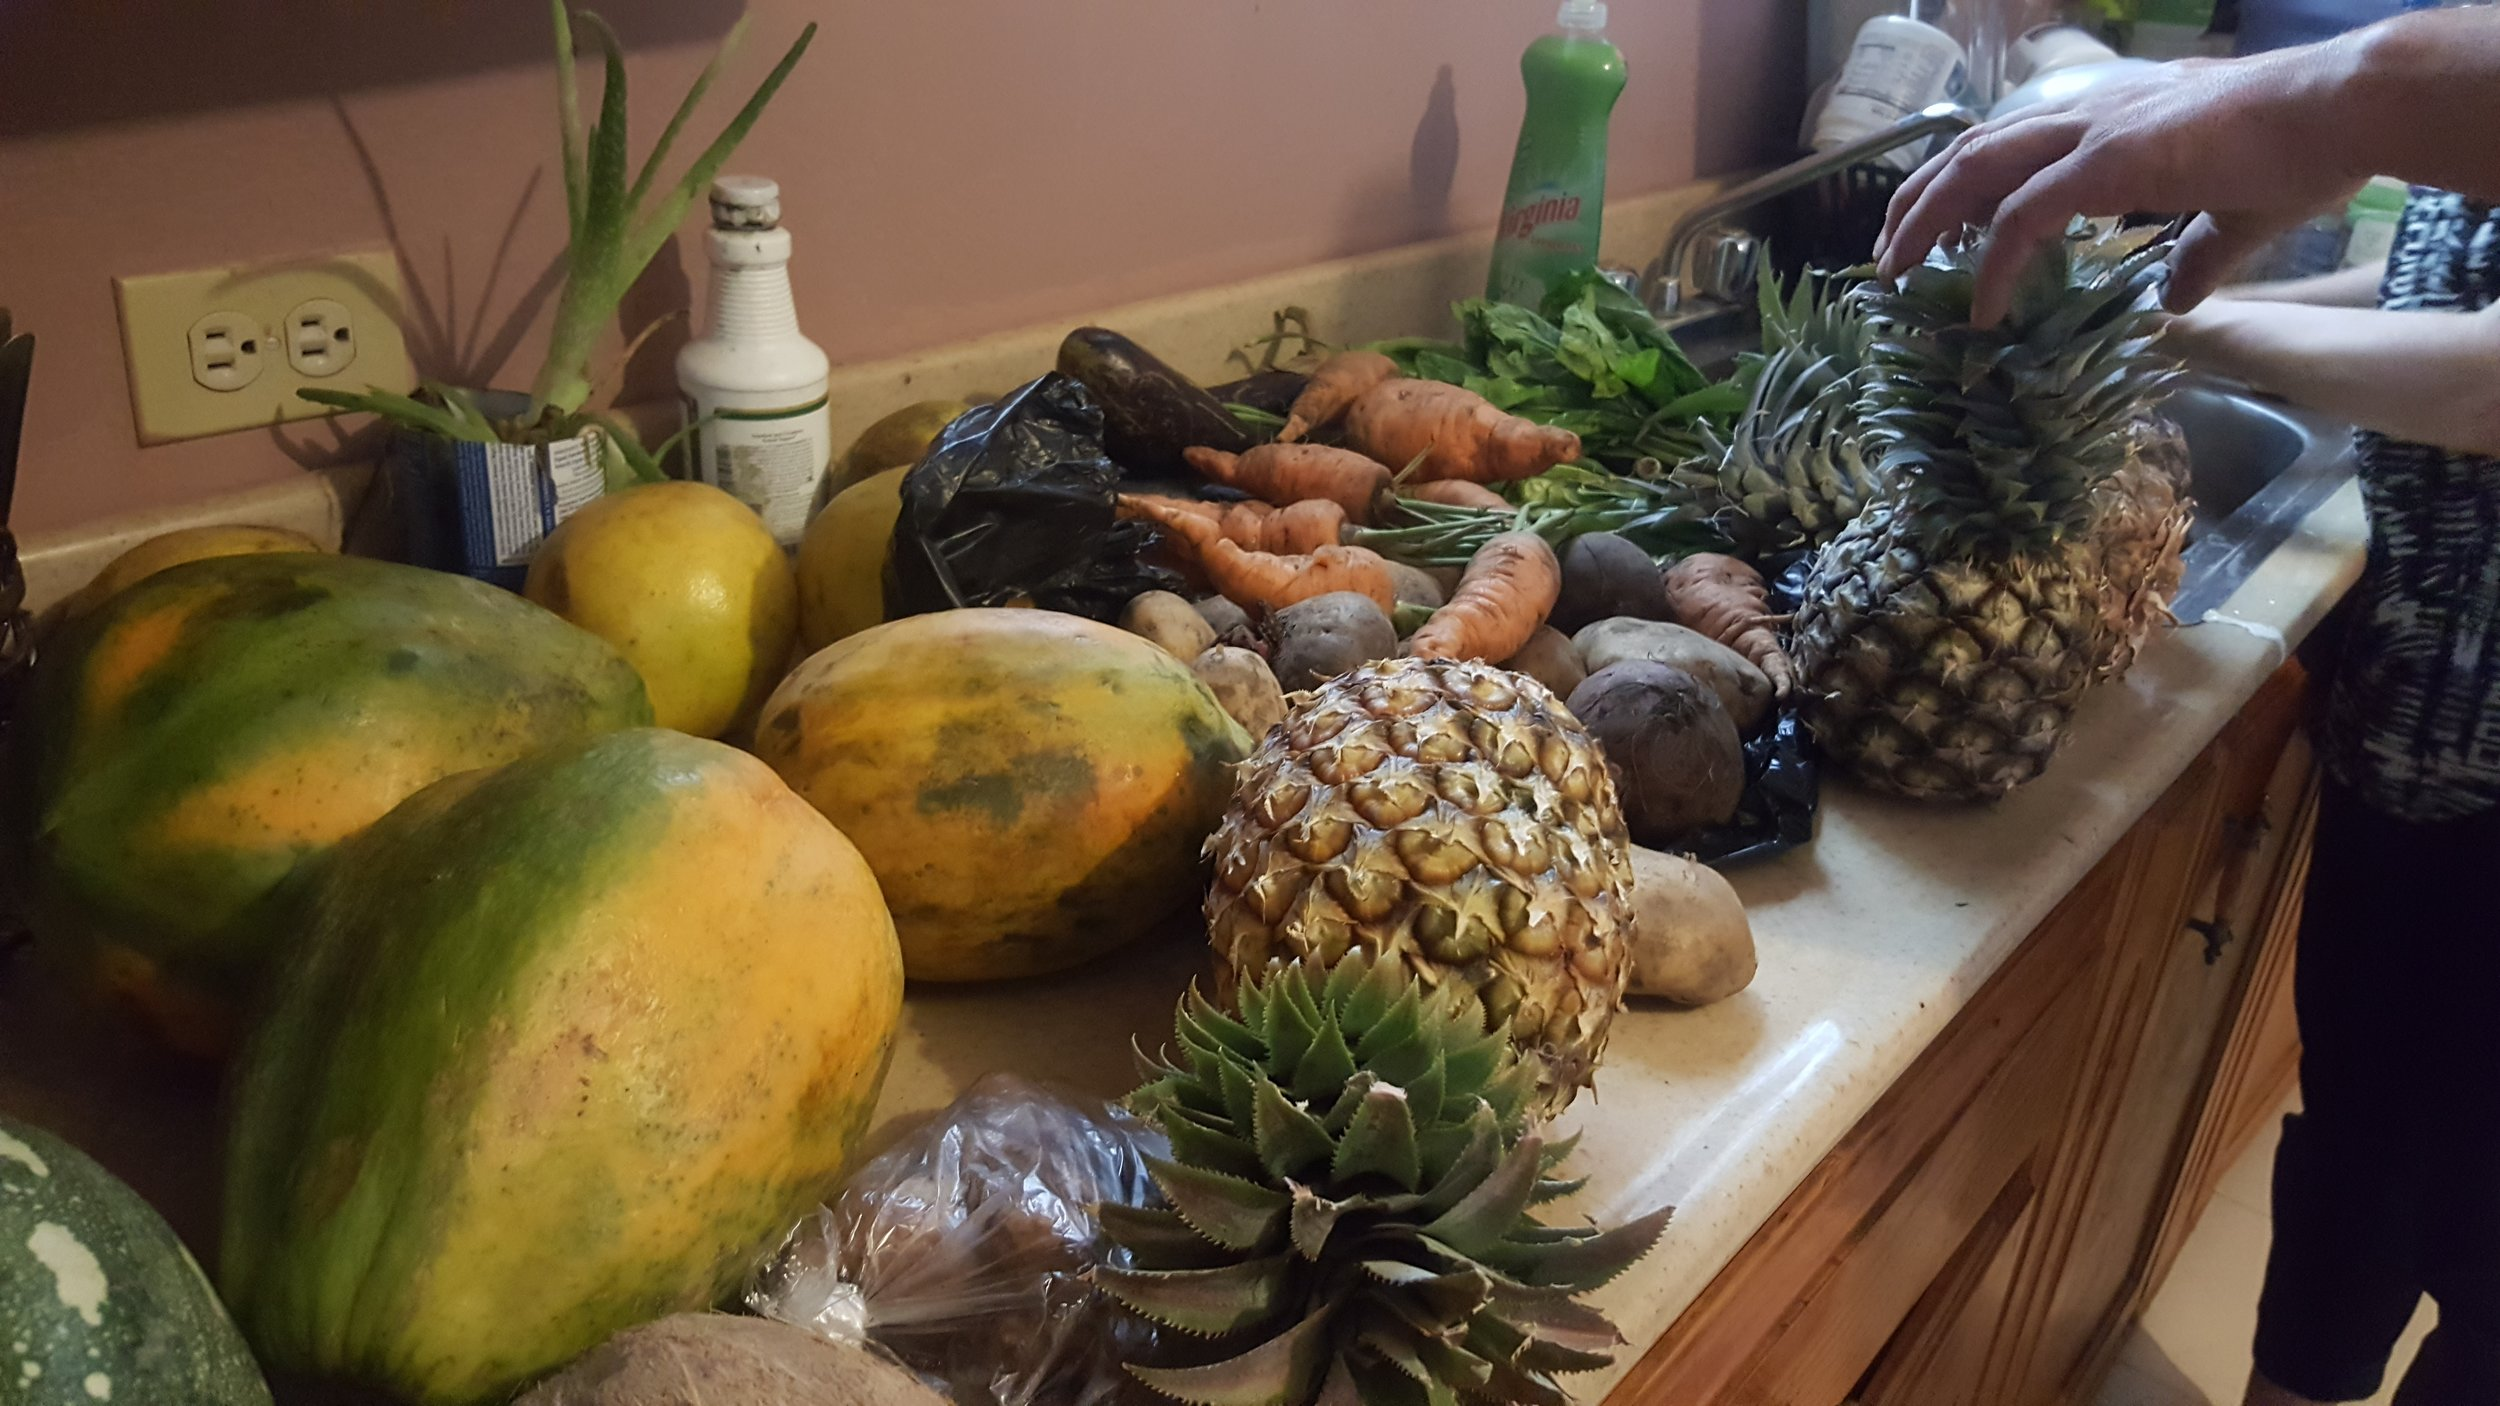 New fruits to try!